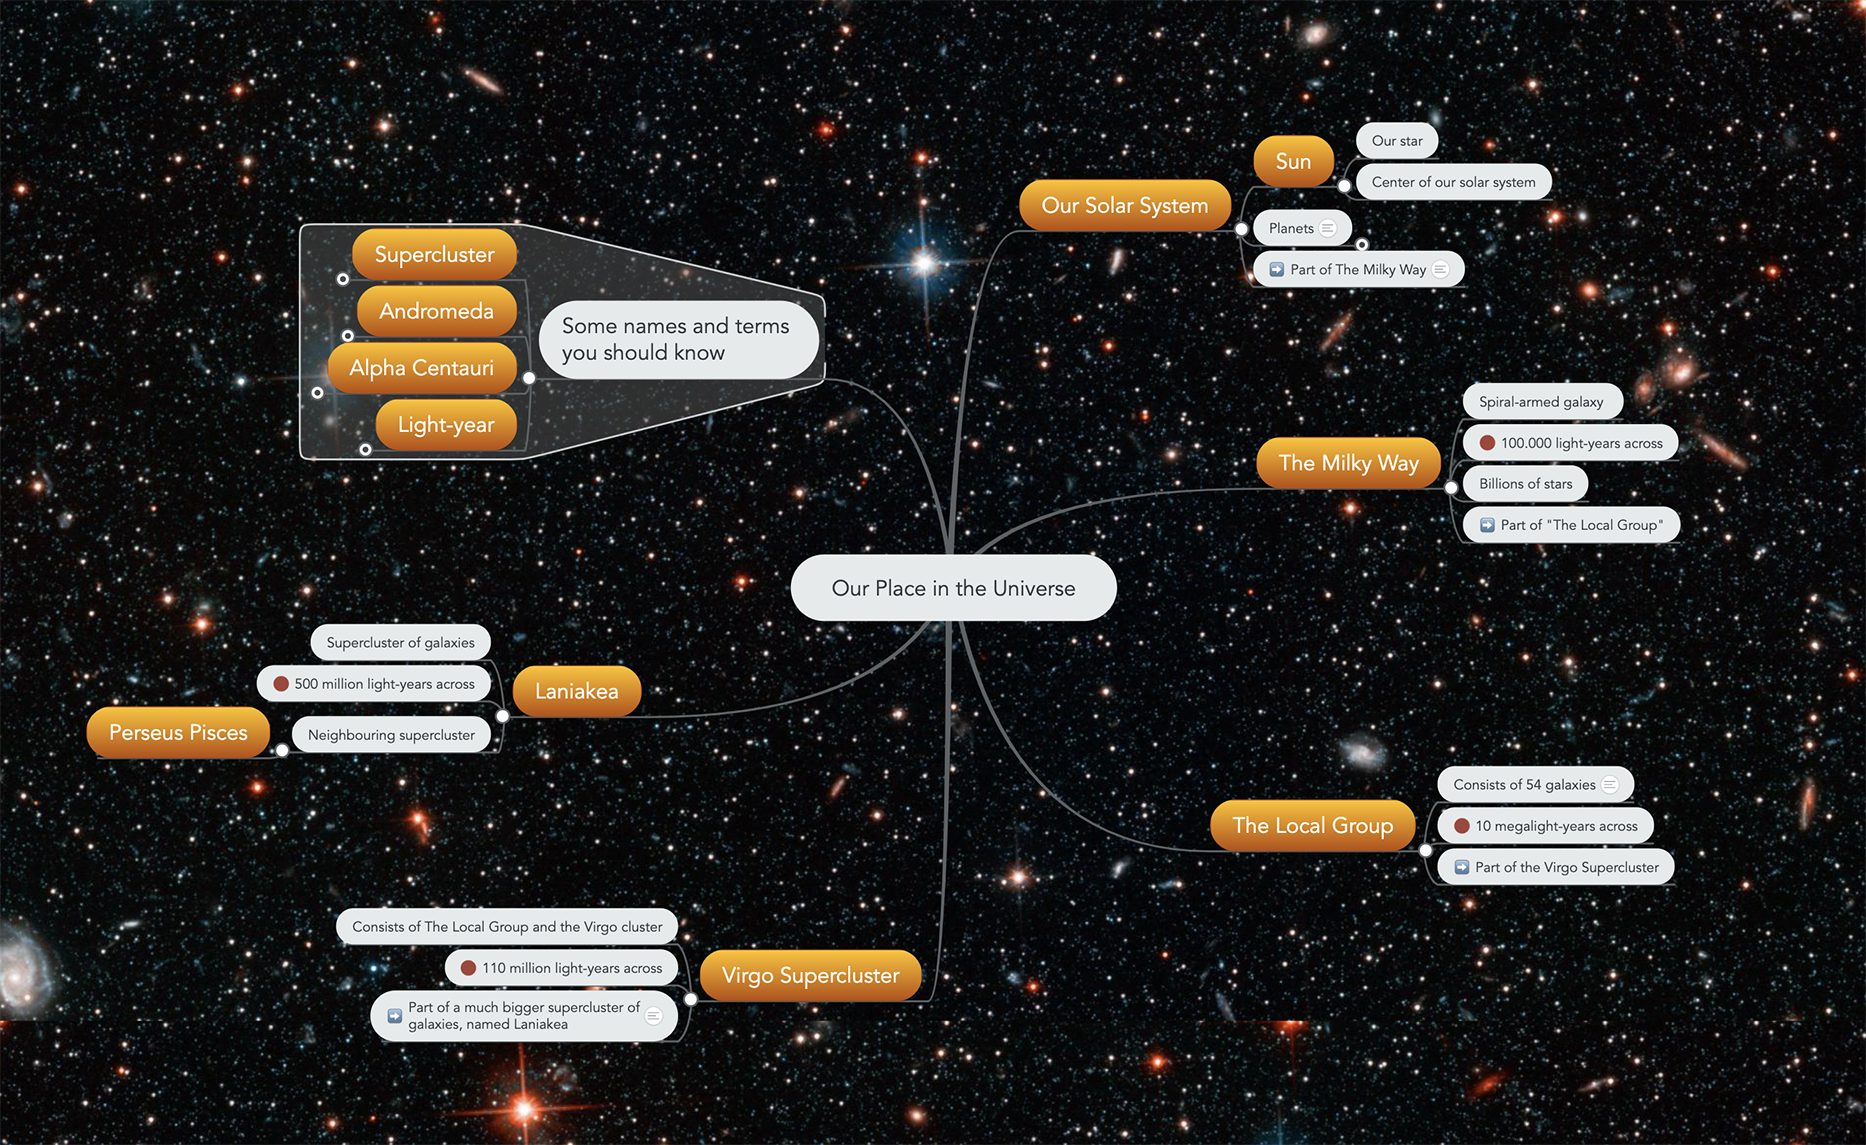 Our place in the universe mind map